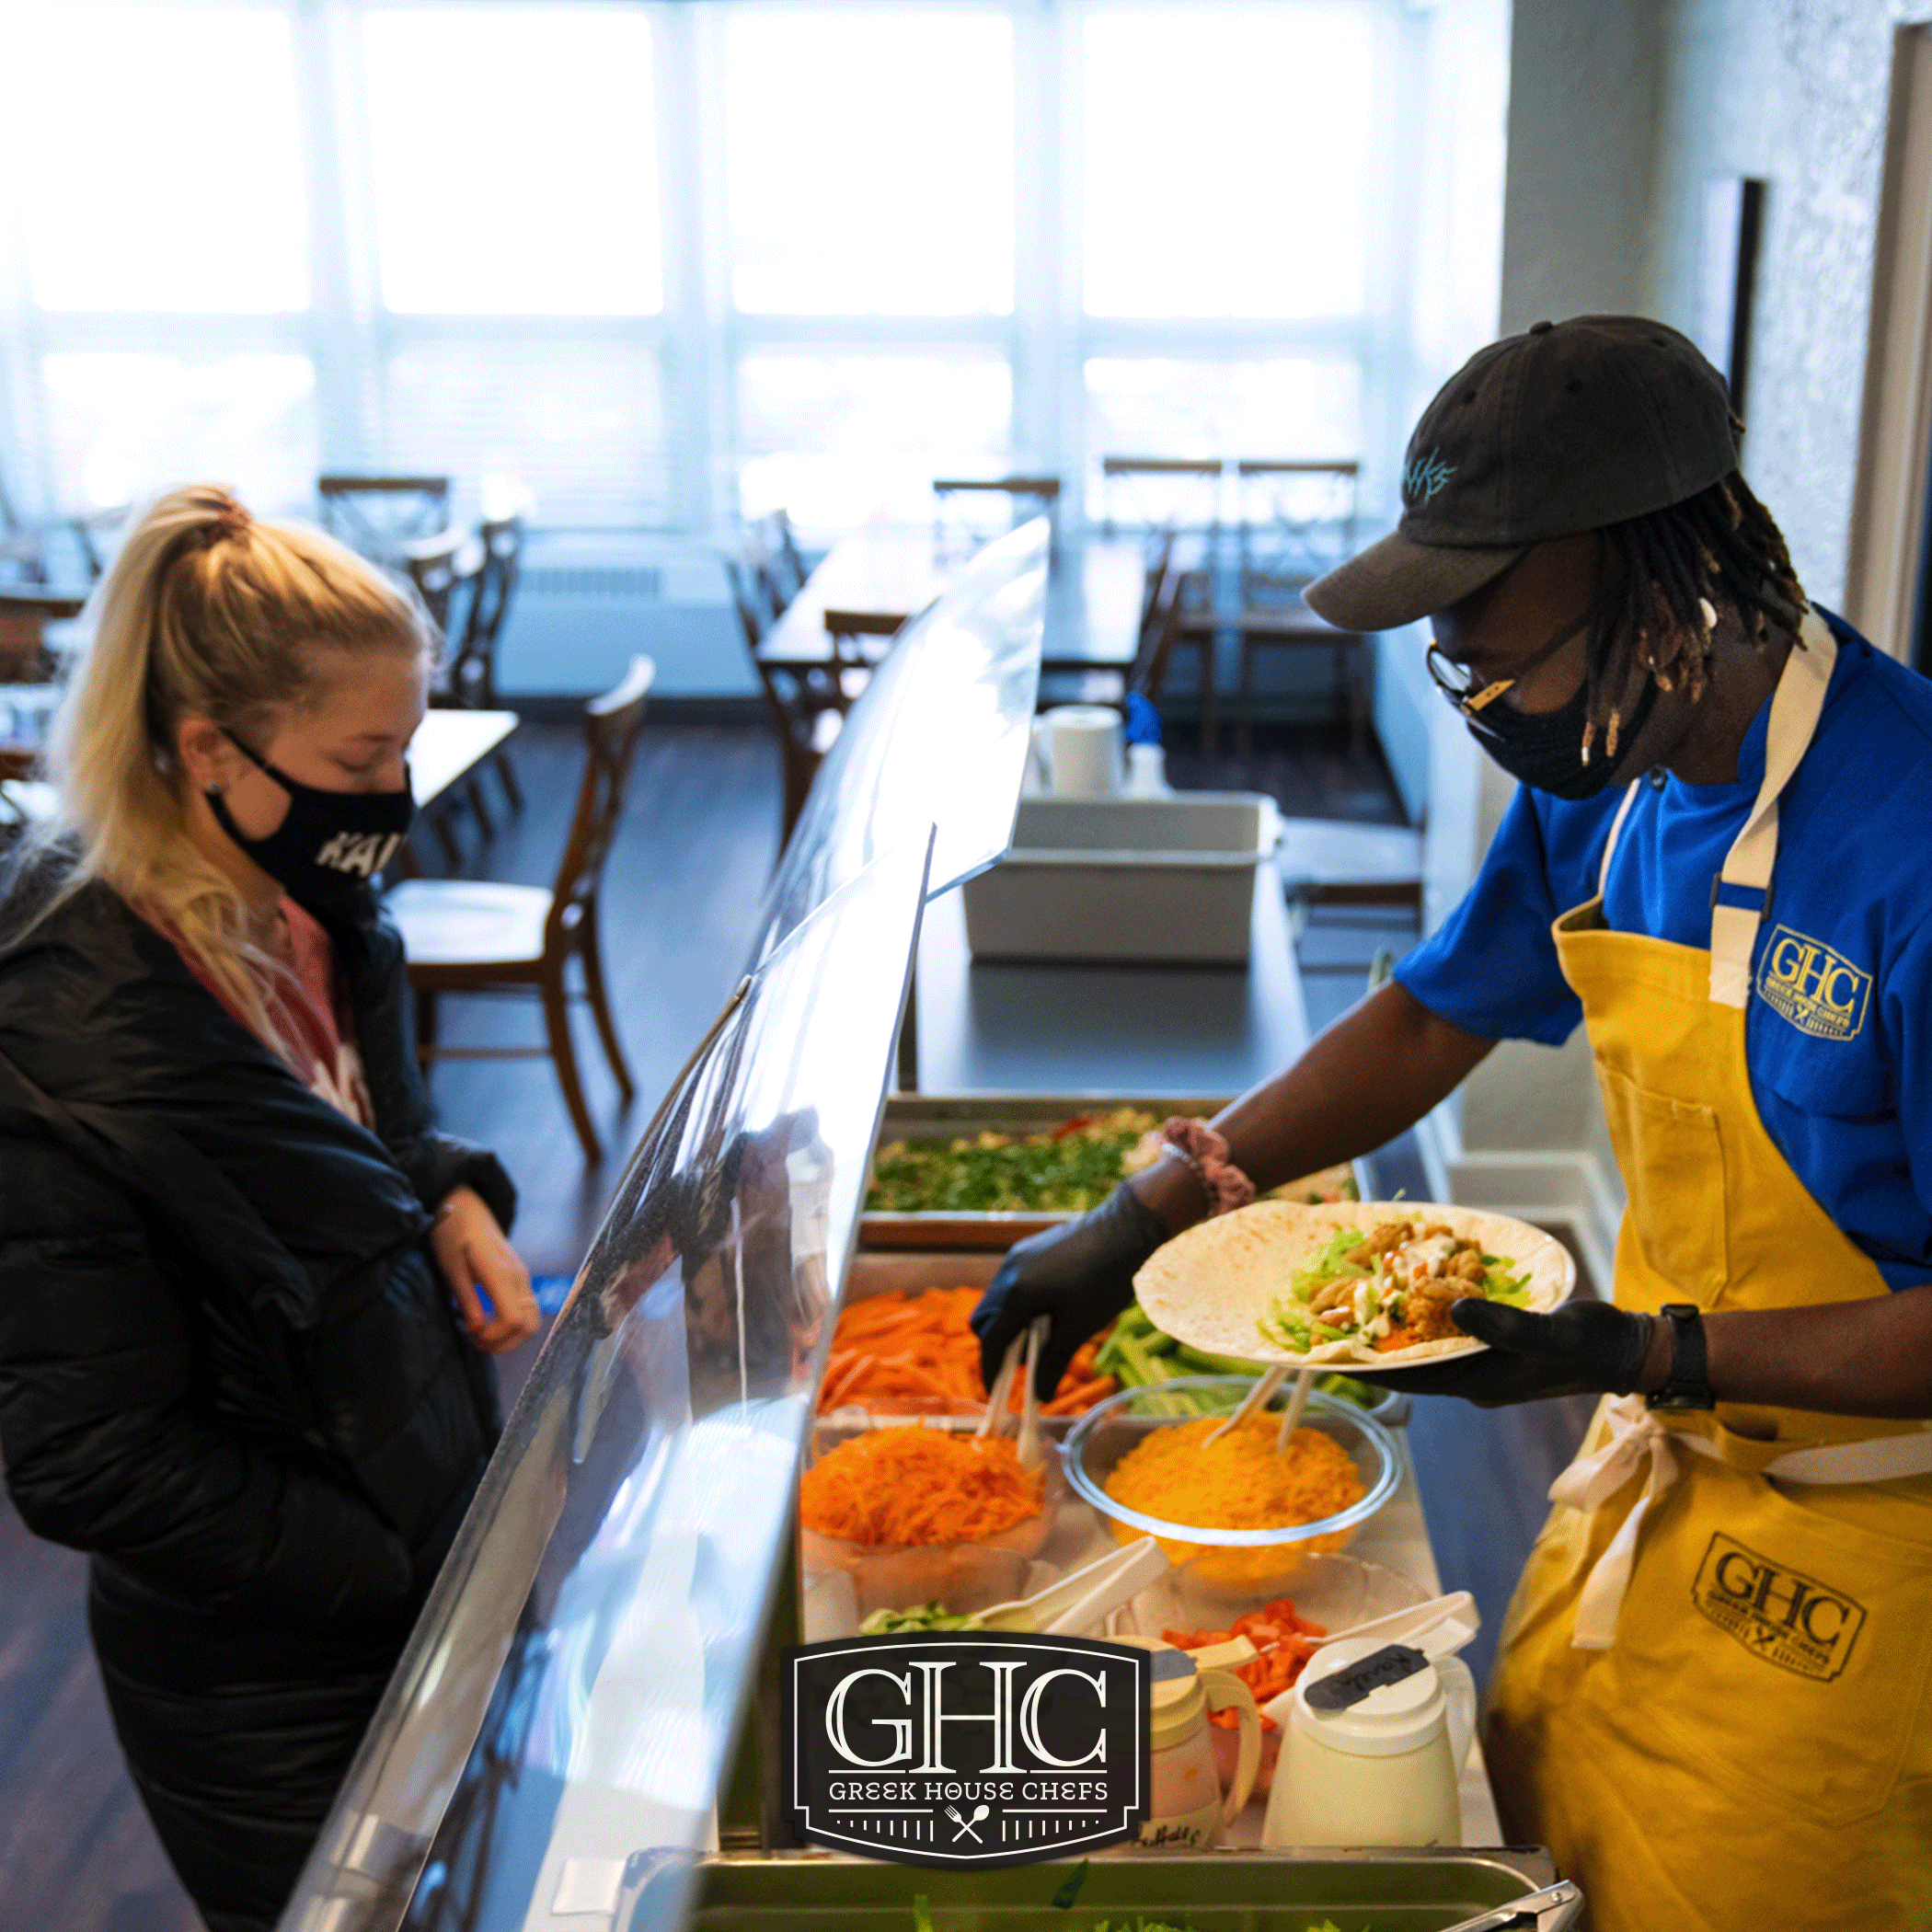 Reliable, customizable, and fresh options for Greek Life food service